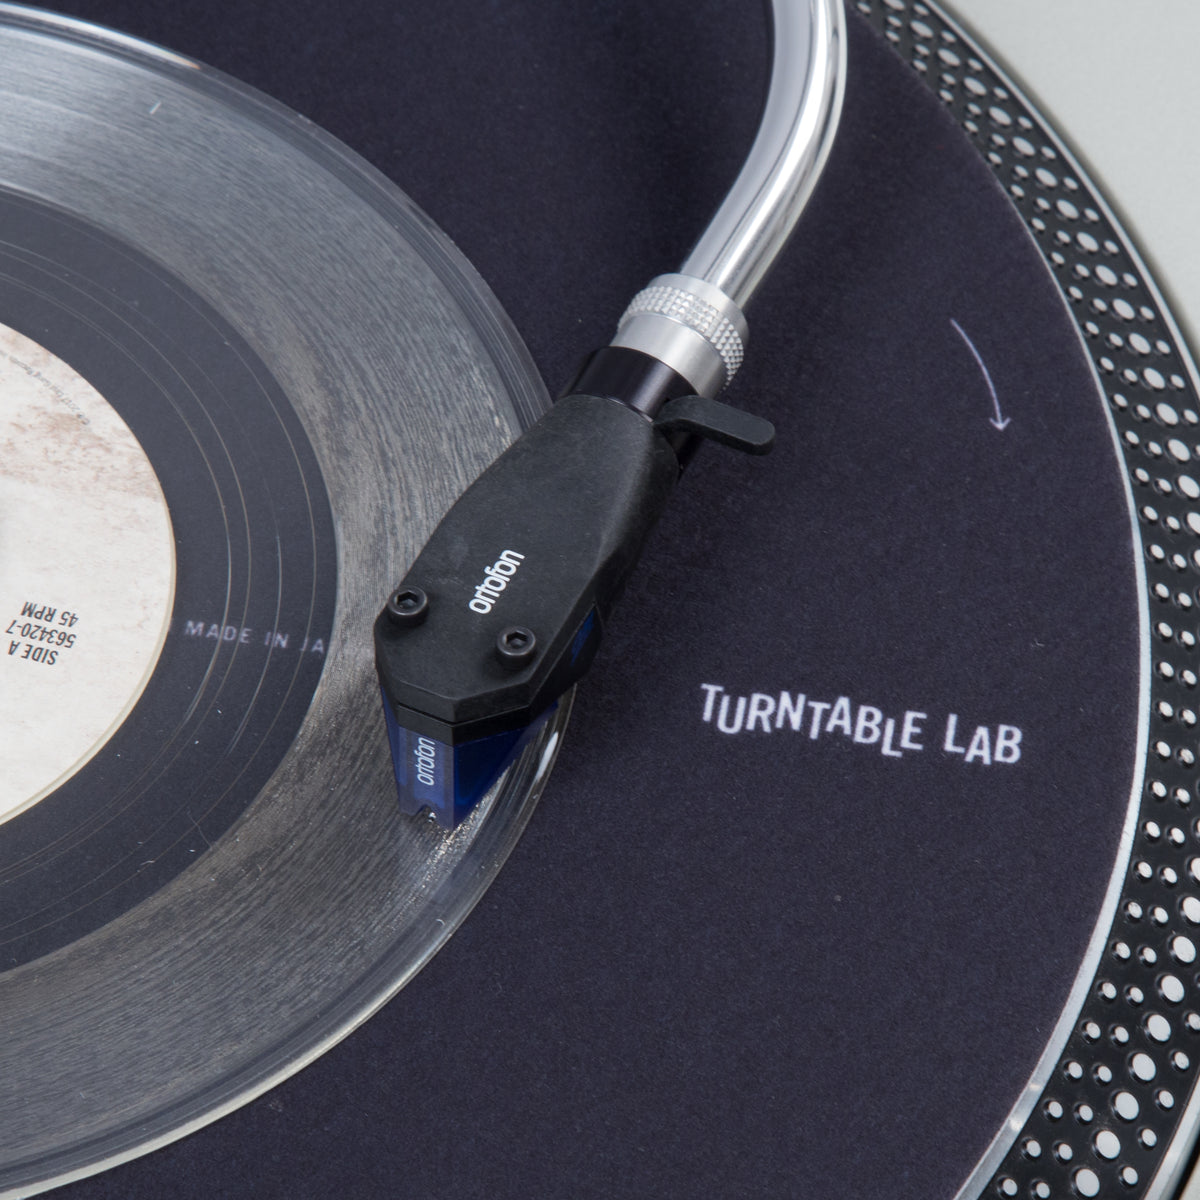 Technics: SL-1200MK5 Turntable - Stokyo MCC / Turntable Lab Edition